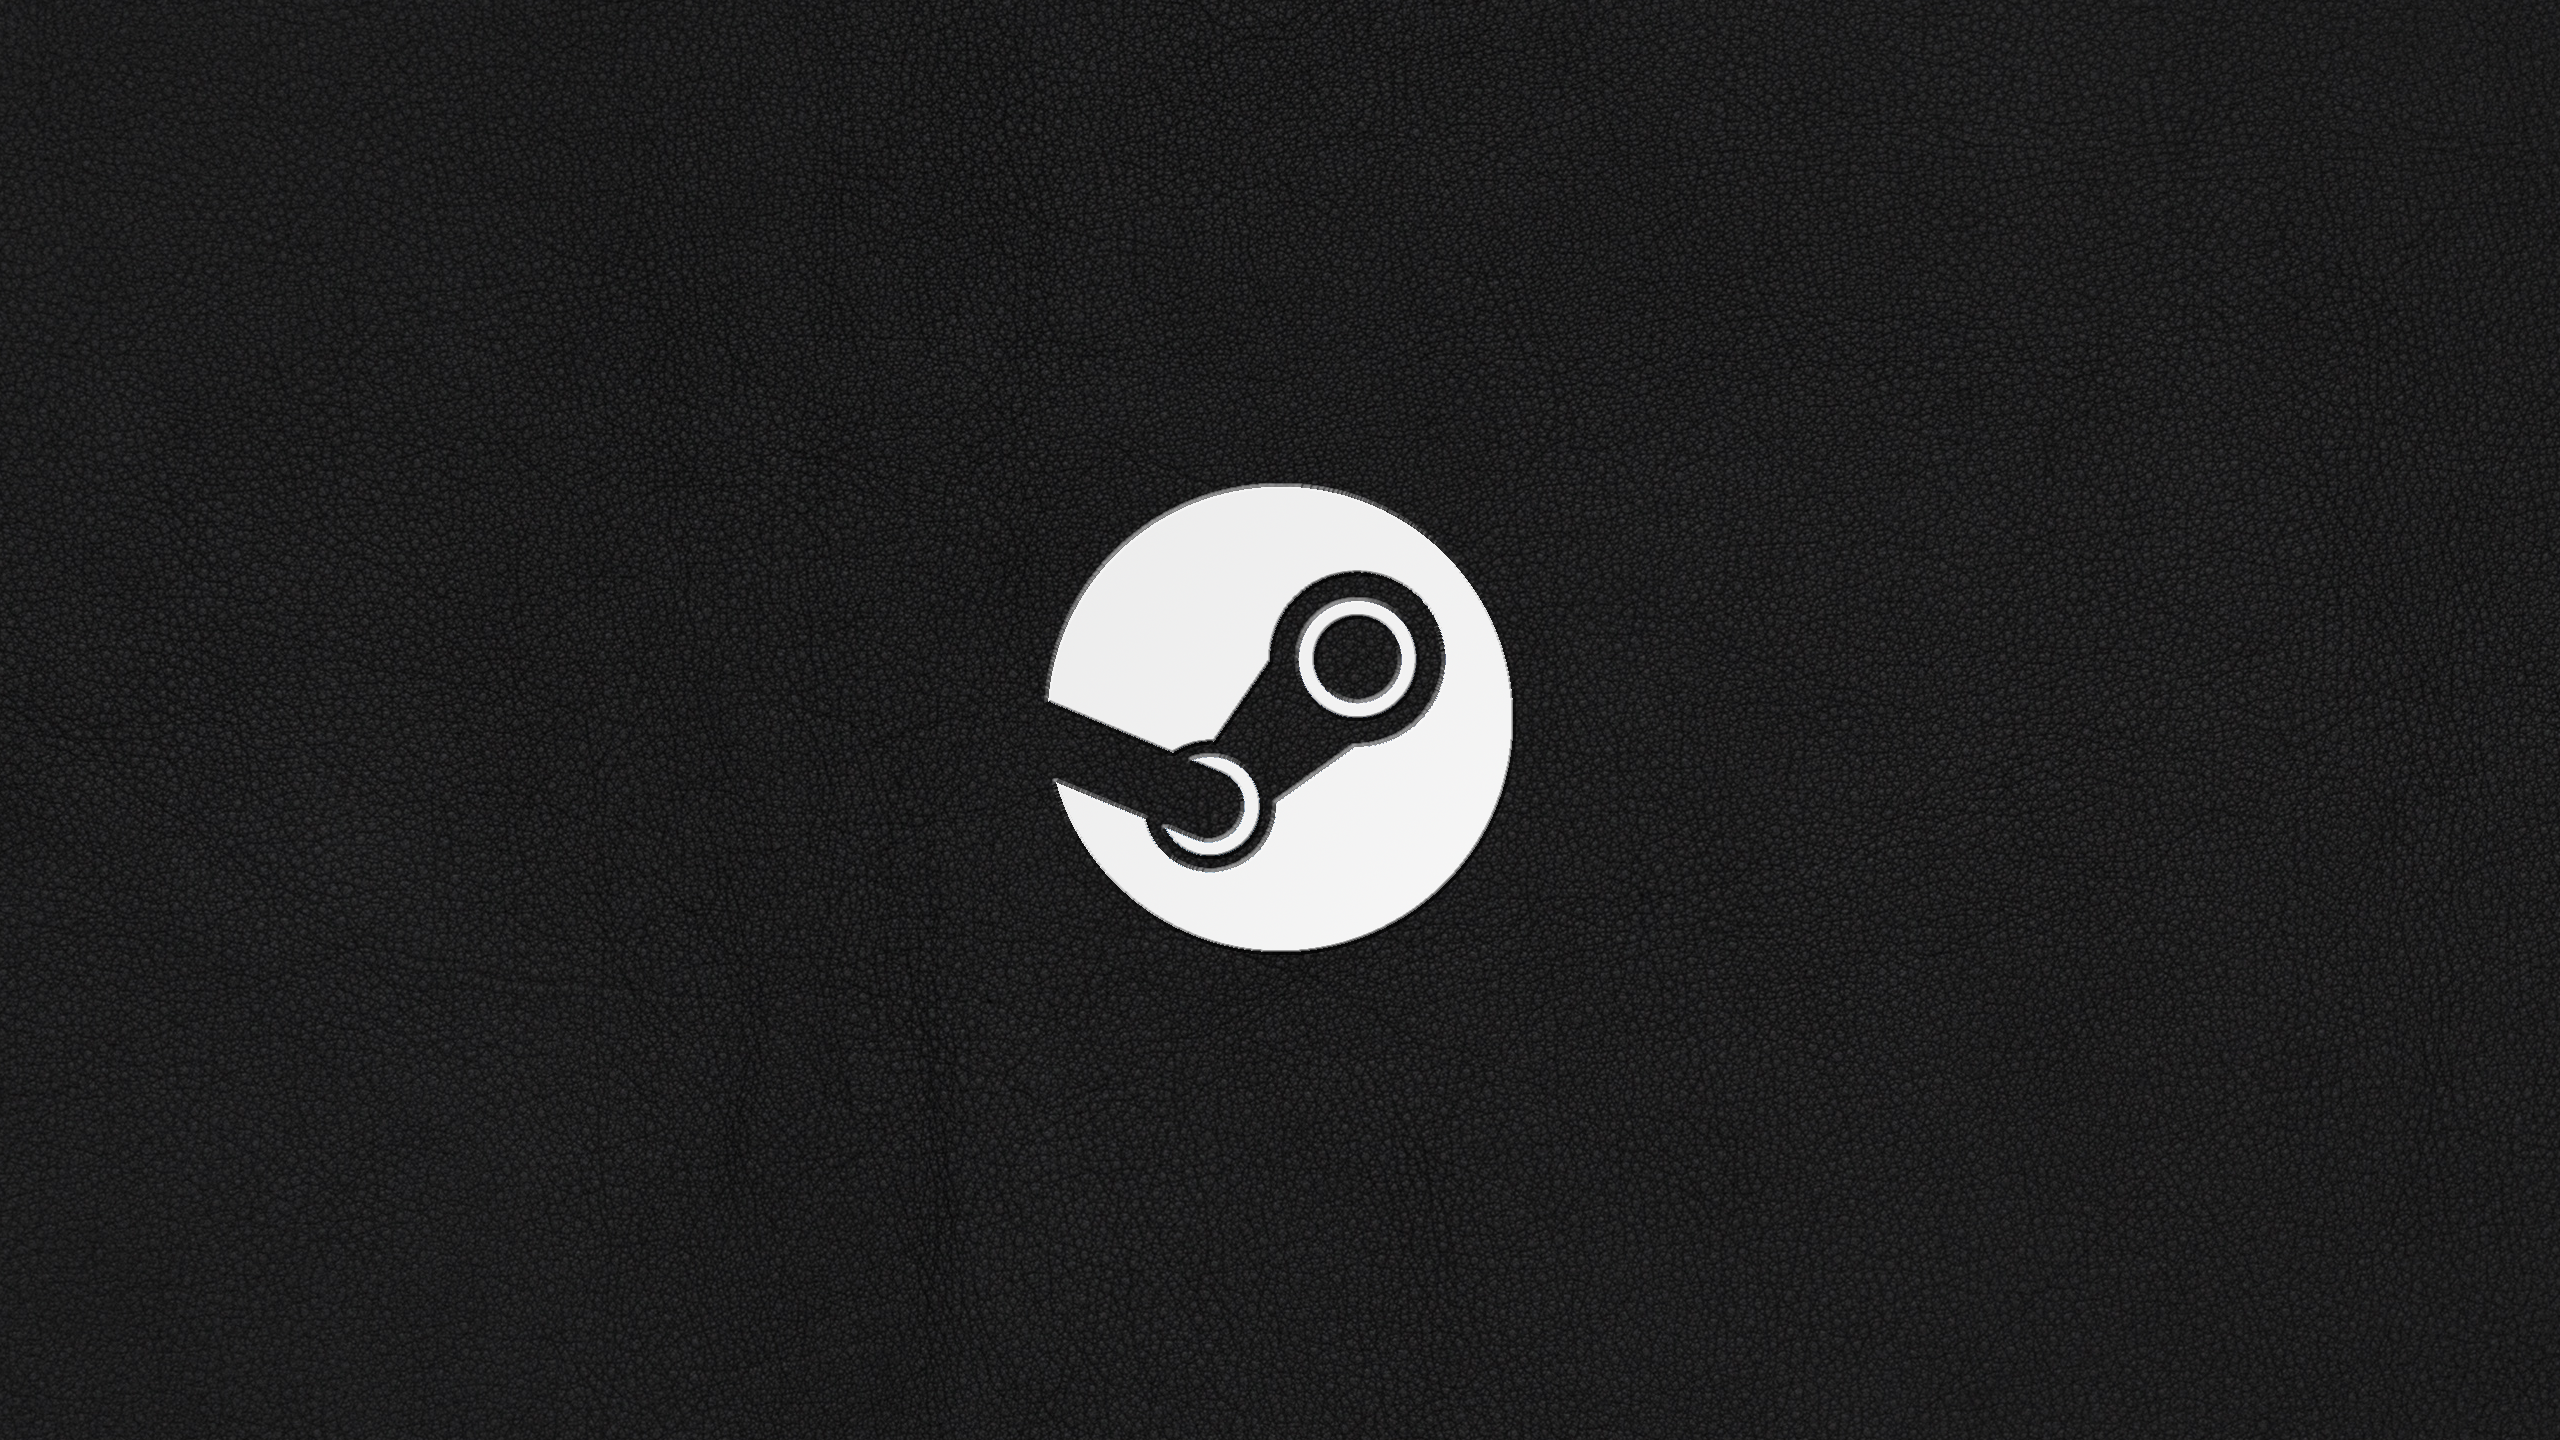 Steam Logo Wallpapers 2560x1440 Px